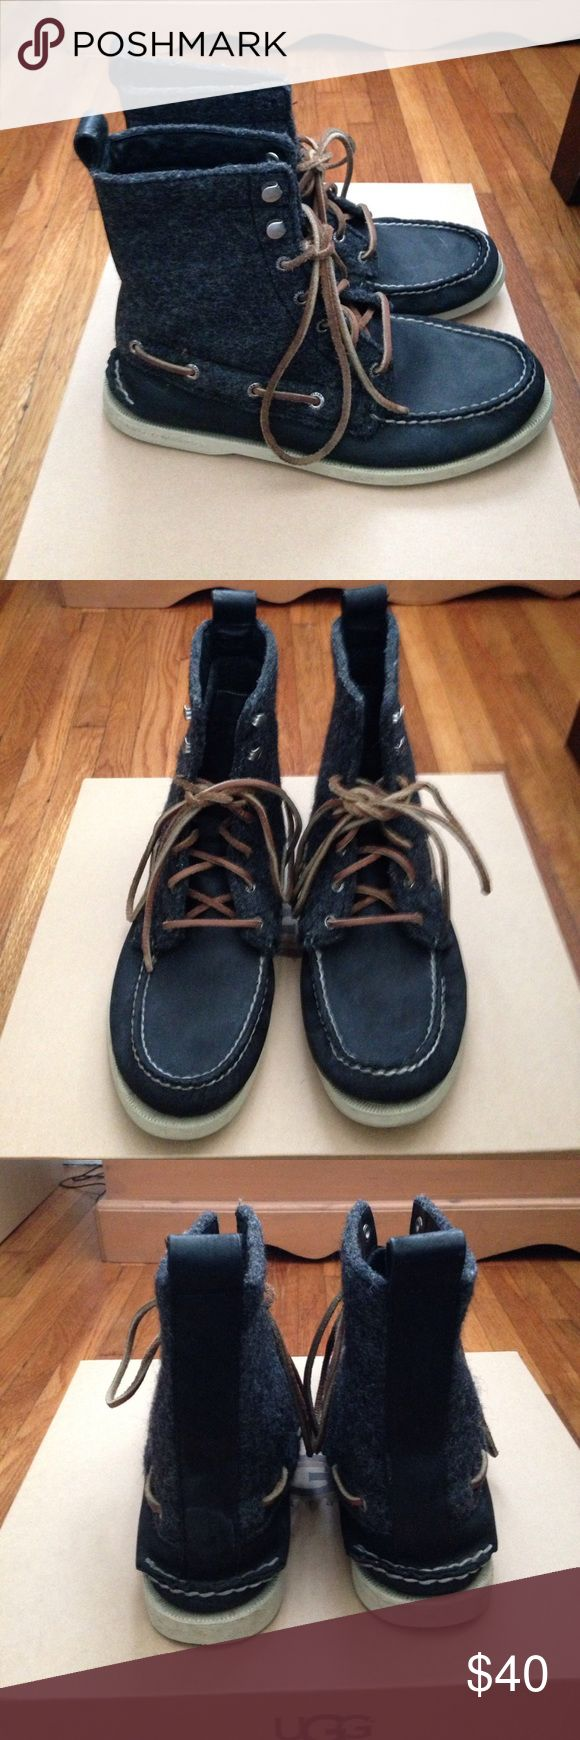 Sperry Top Sider boots From the Cloud Logo collection, the 7-Eye boot comes in leather/ wool combo with a thin boat shoe outer sole. Gently used, dark navy color. Sperry Top-Sider Shoes Boots